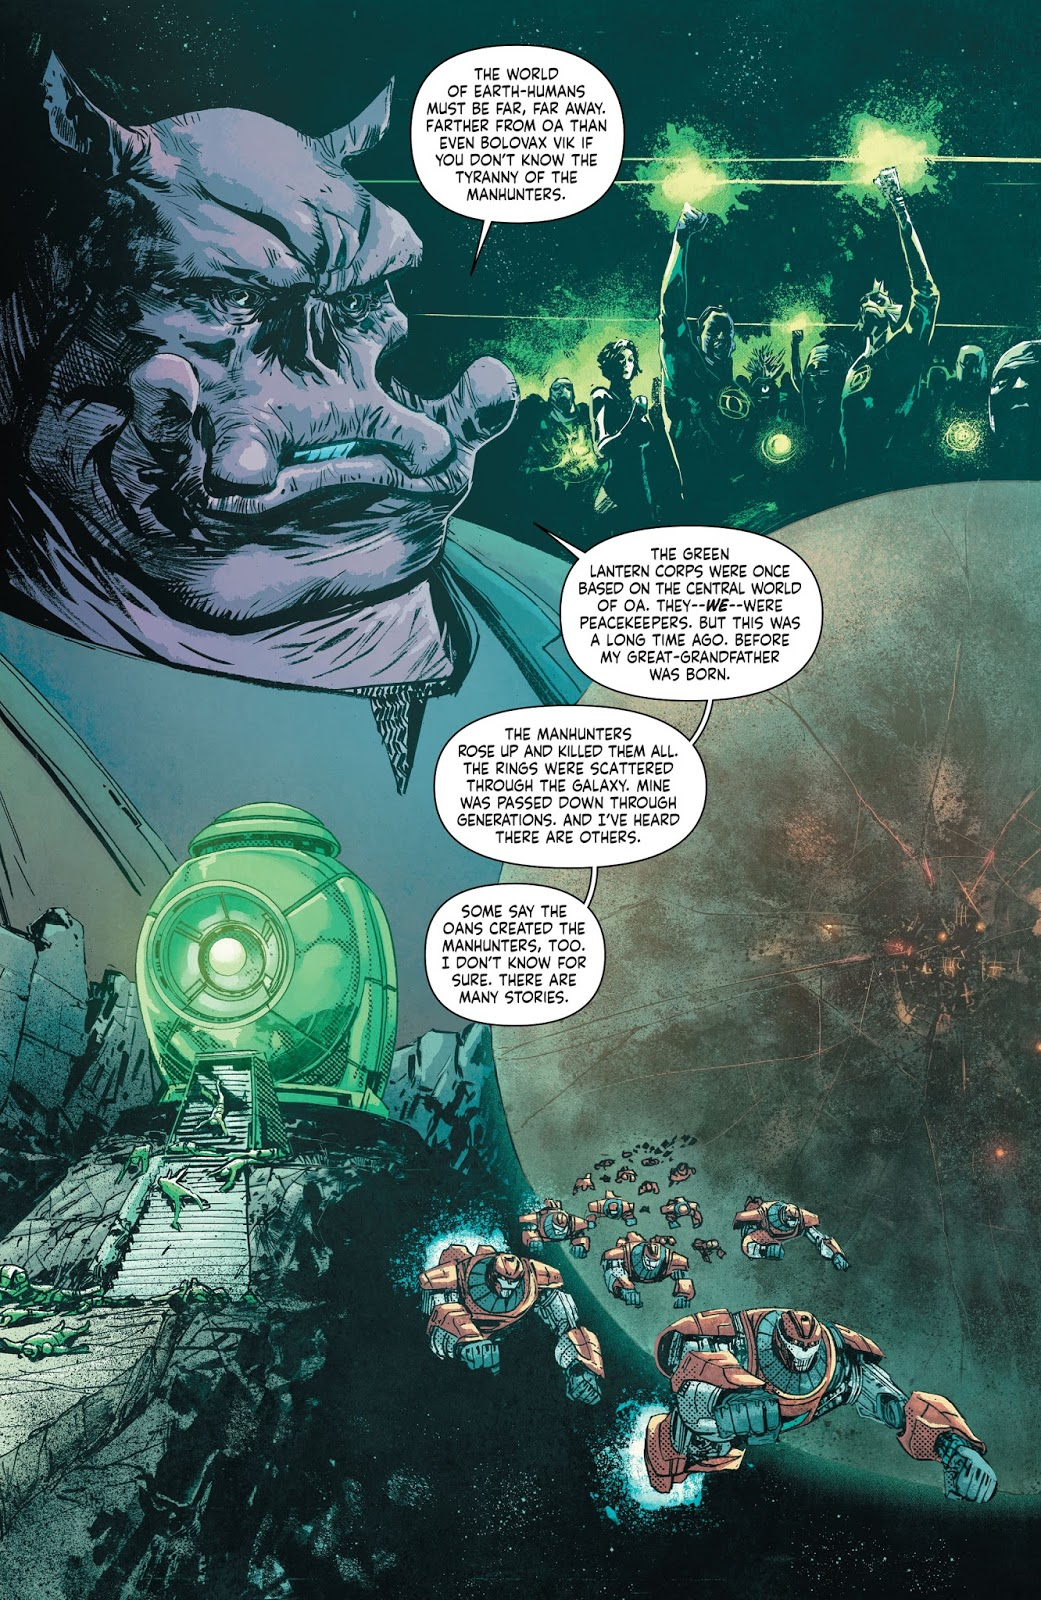 From - Green Lantern: Earth One